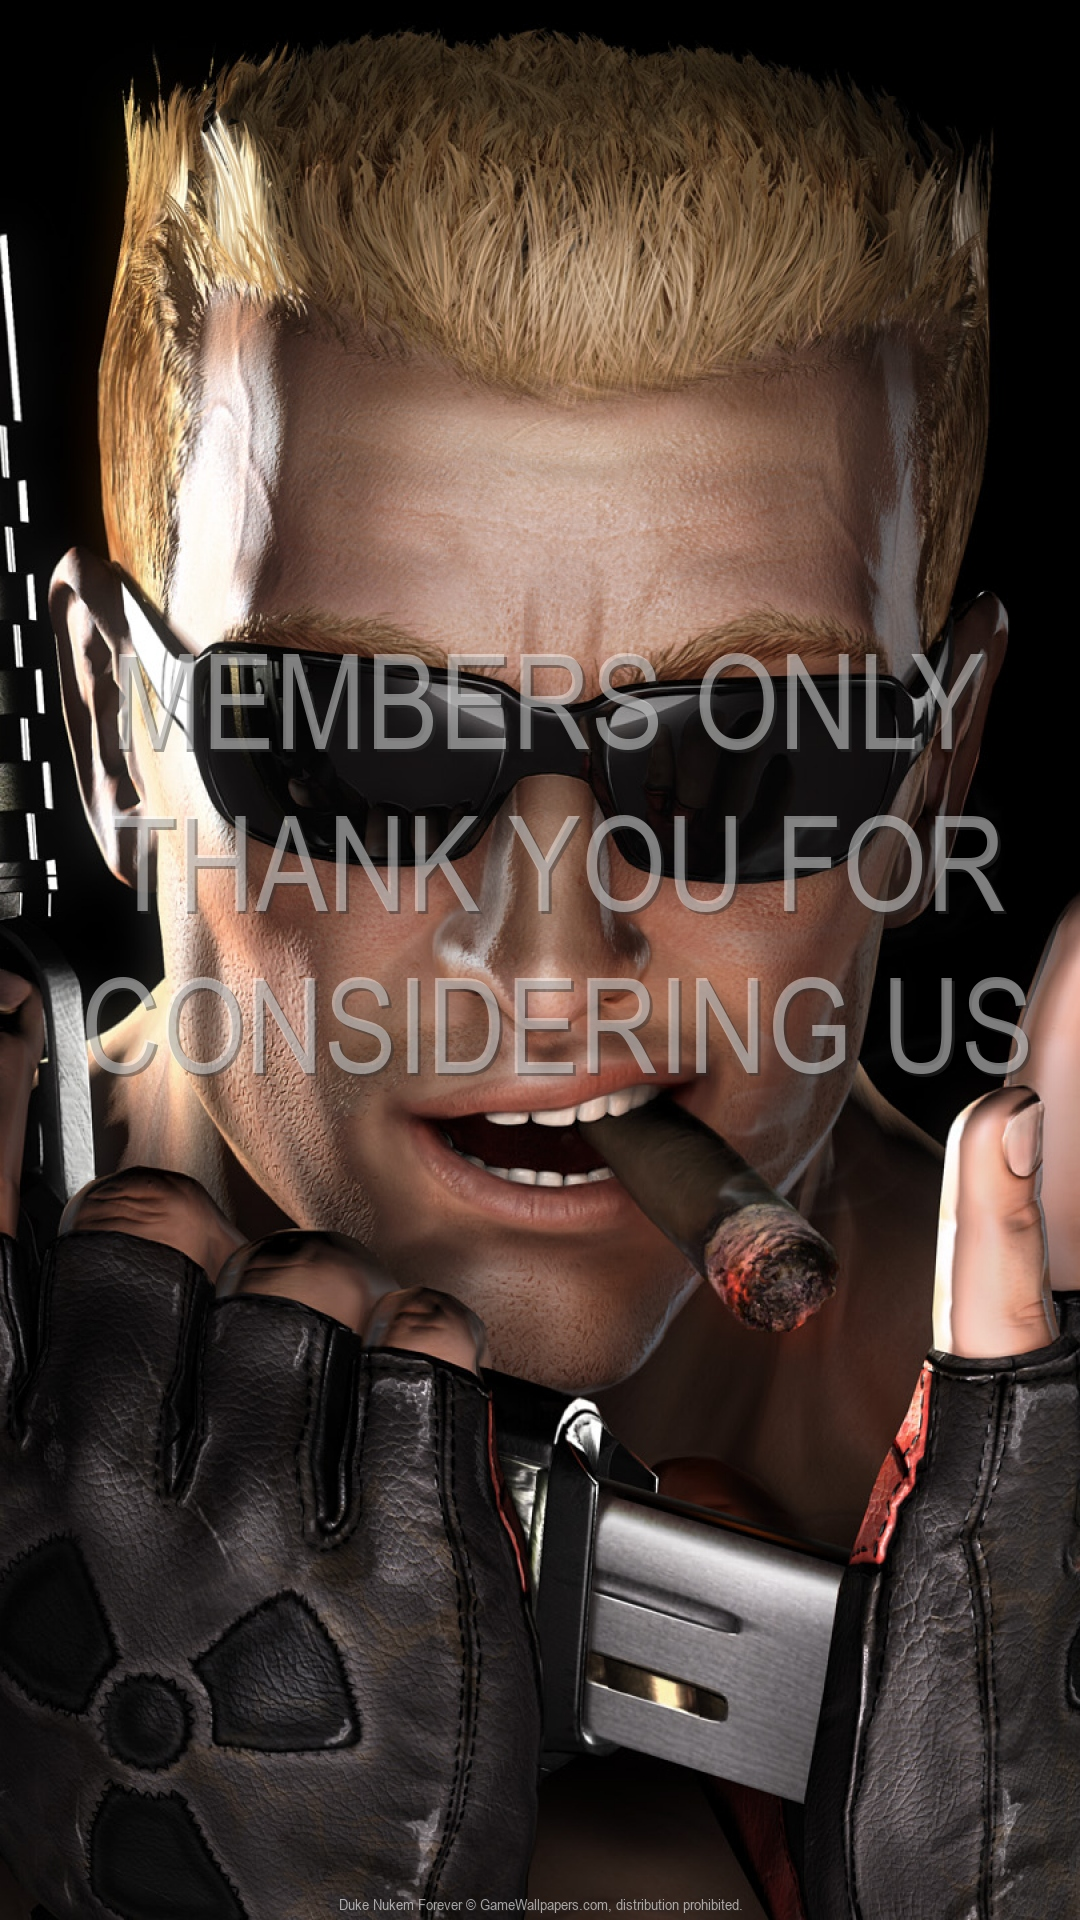 Duke Nukem Forever 1920x1080 Mobile wallpaper or background 02